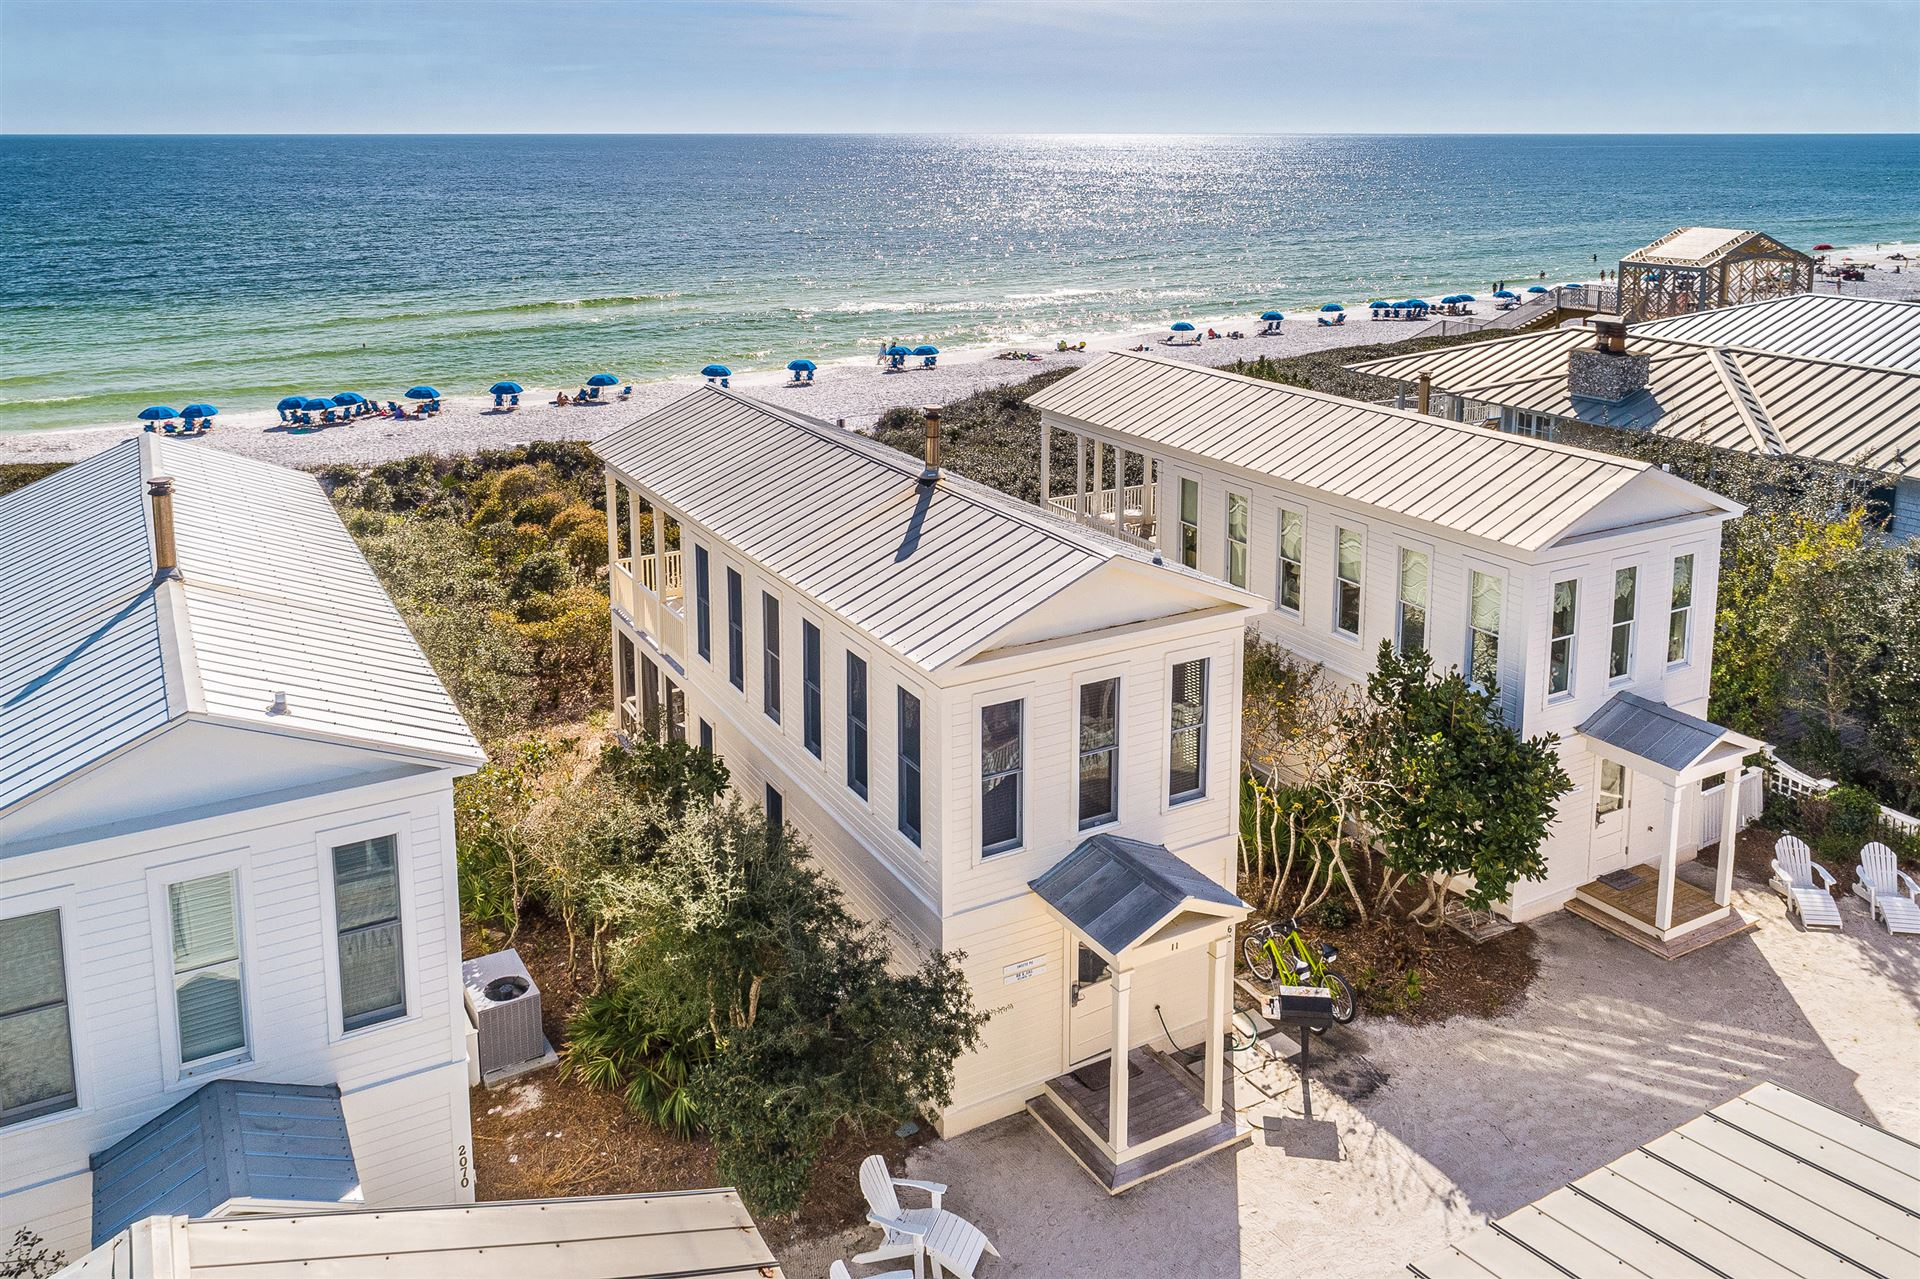 Property Image Of 2060 E County Hwy 30A In Santa Rosa Beach, Fl